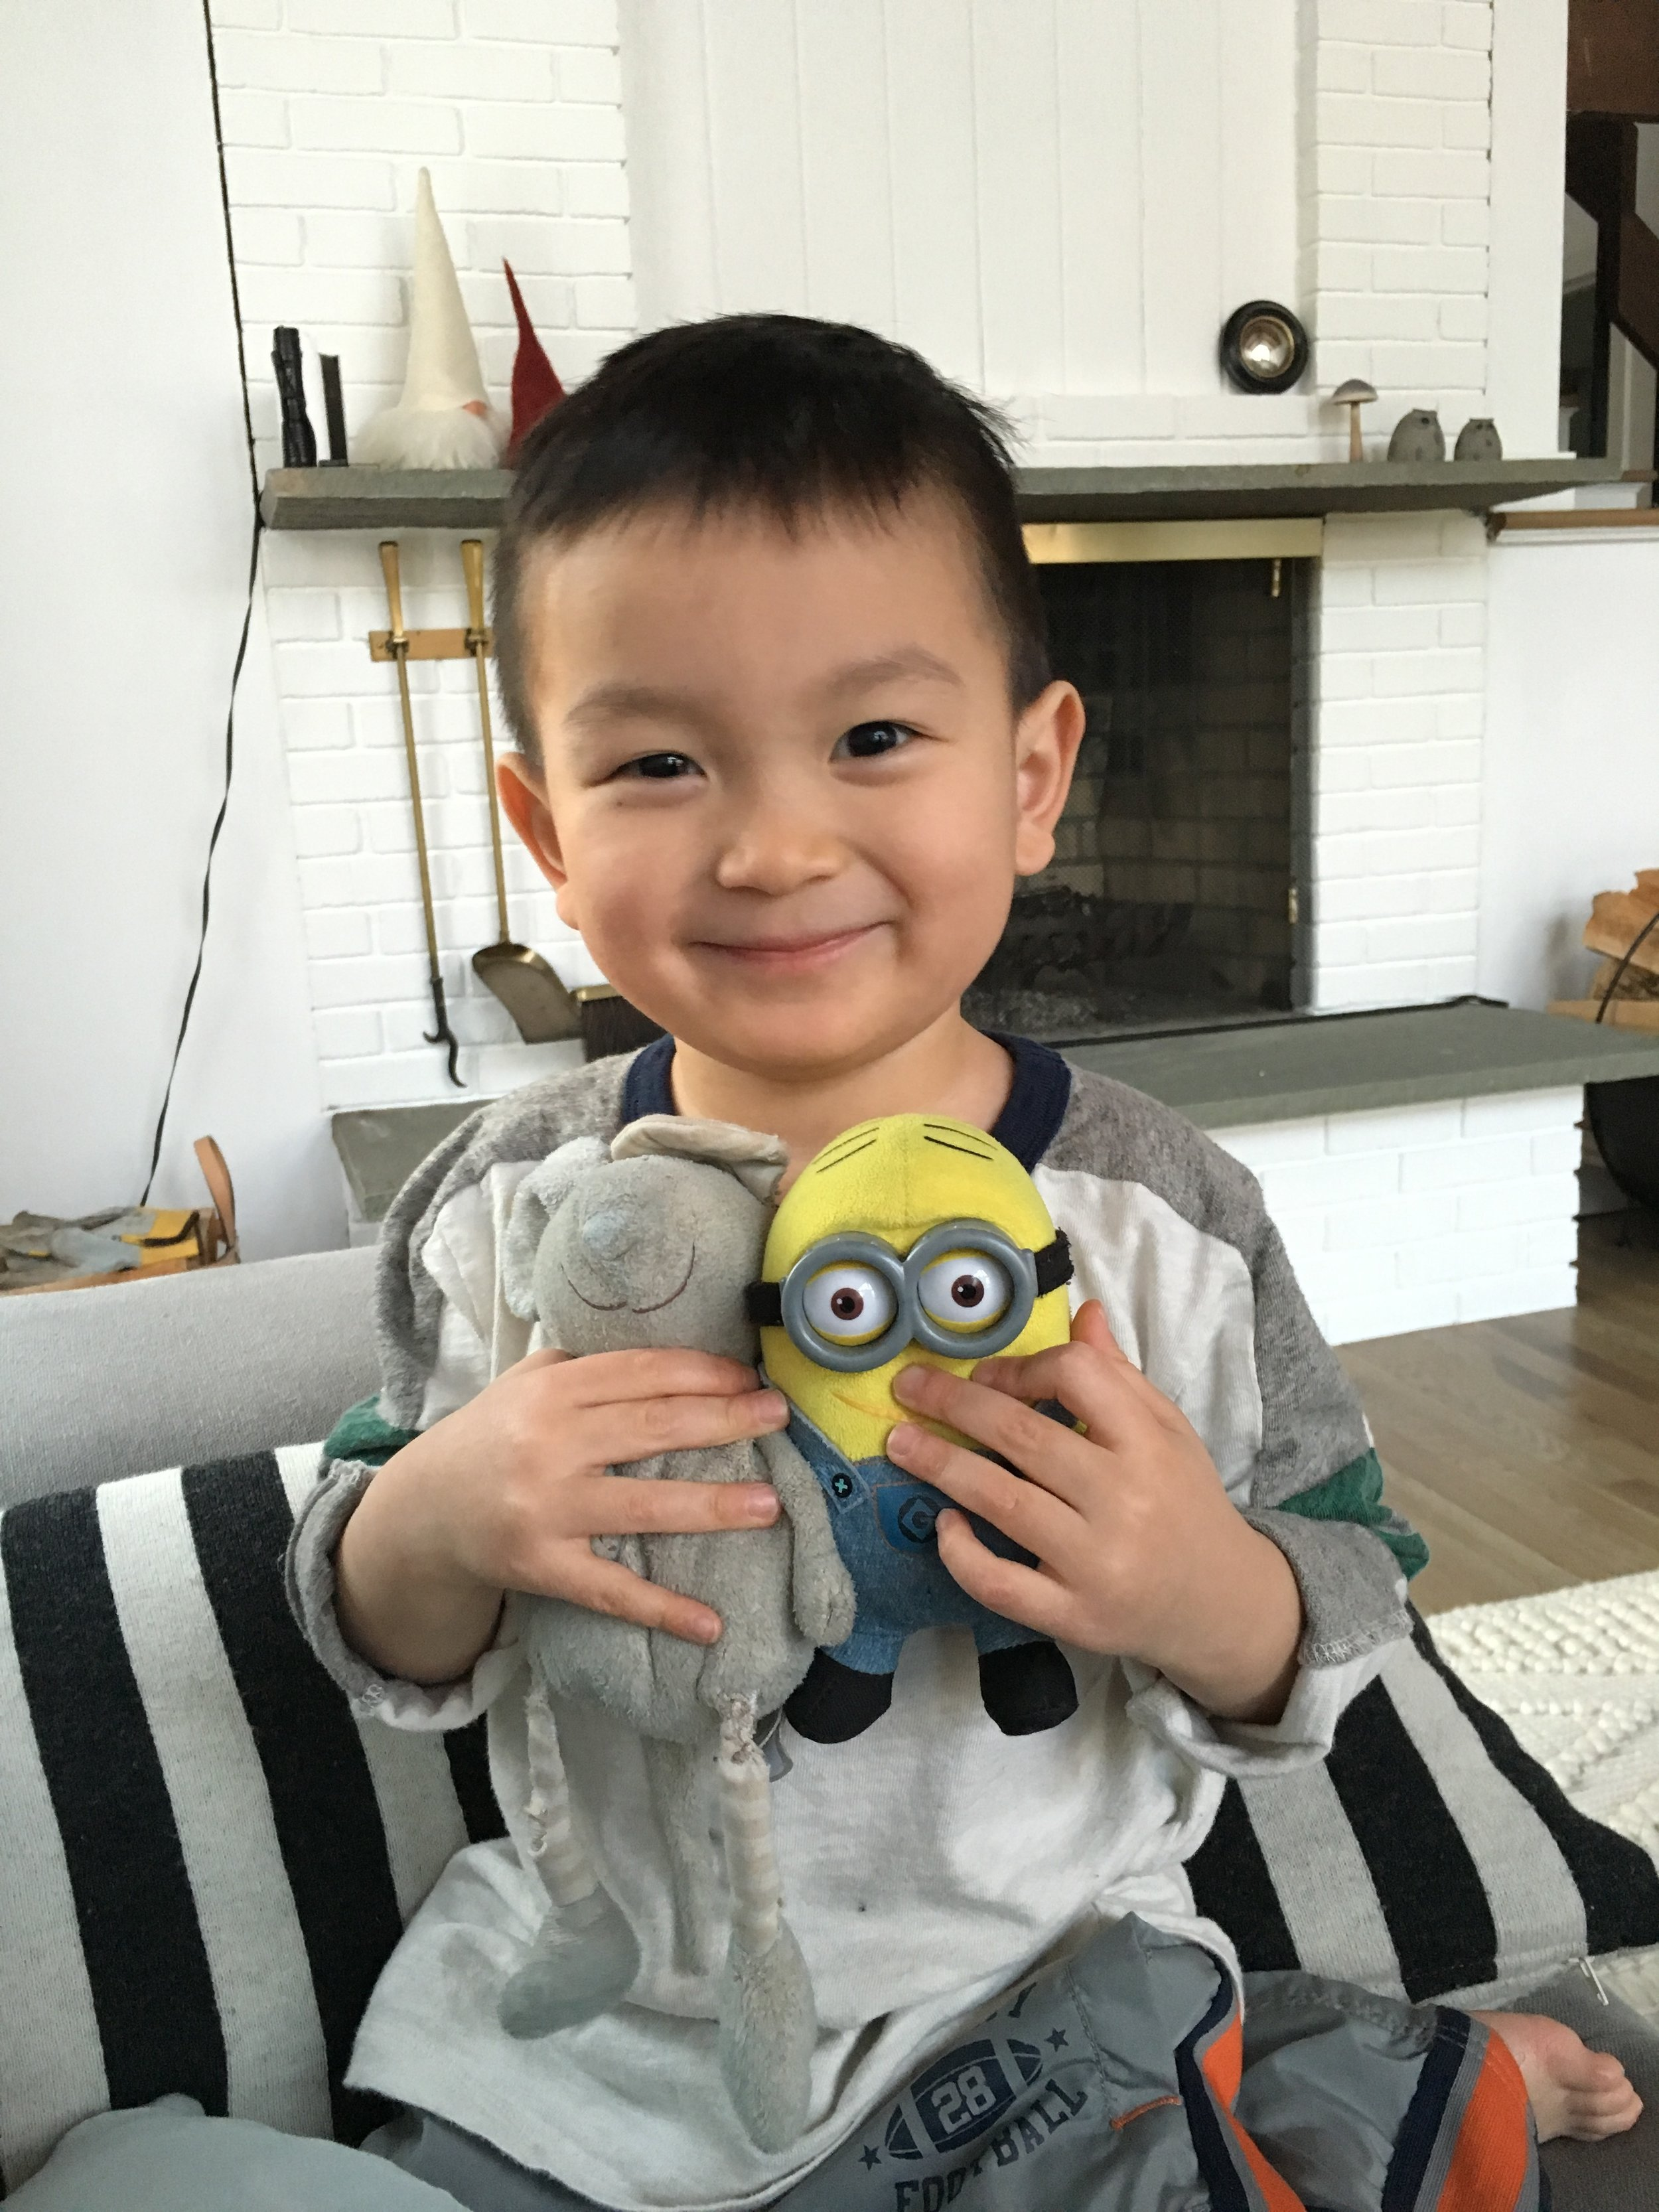 Lucas Harashima - Lucas, age 6, passed away on March 21st 2018, just 18 months after being diagnosed with DIPG, an incurable type of pediatric brain cancer. In his honor, we will work tirelessly to find a cure.